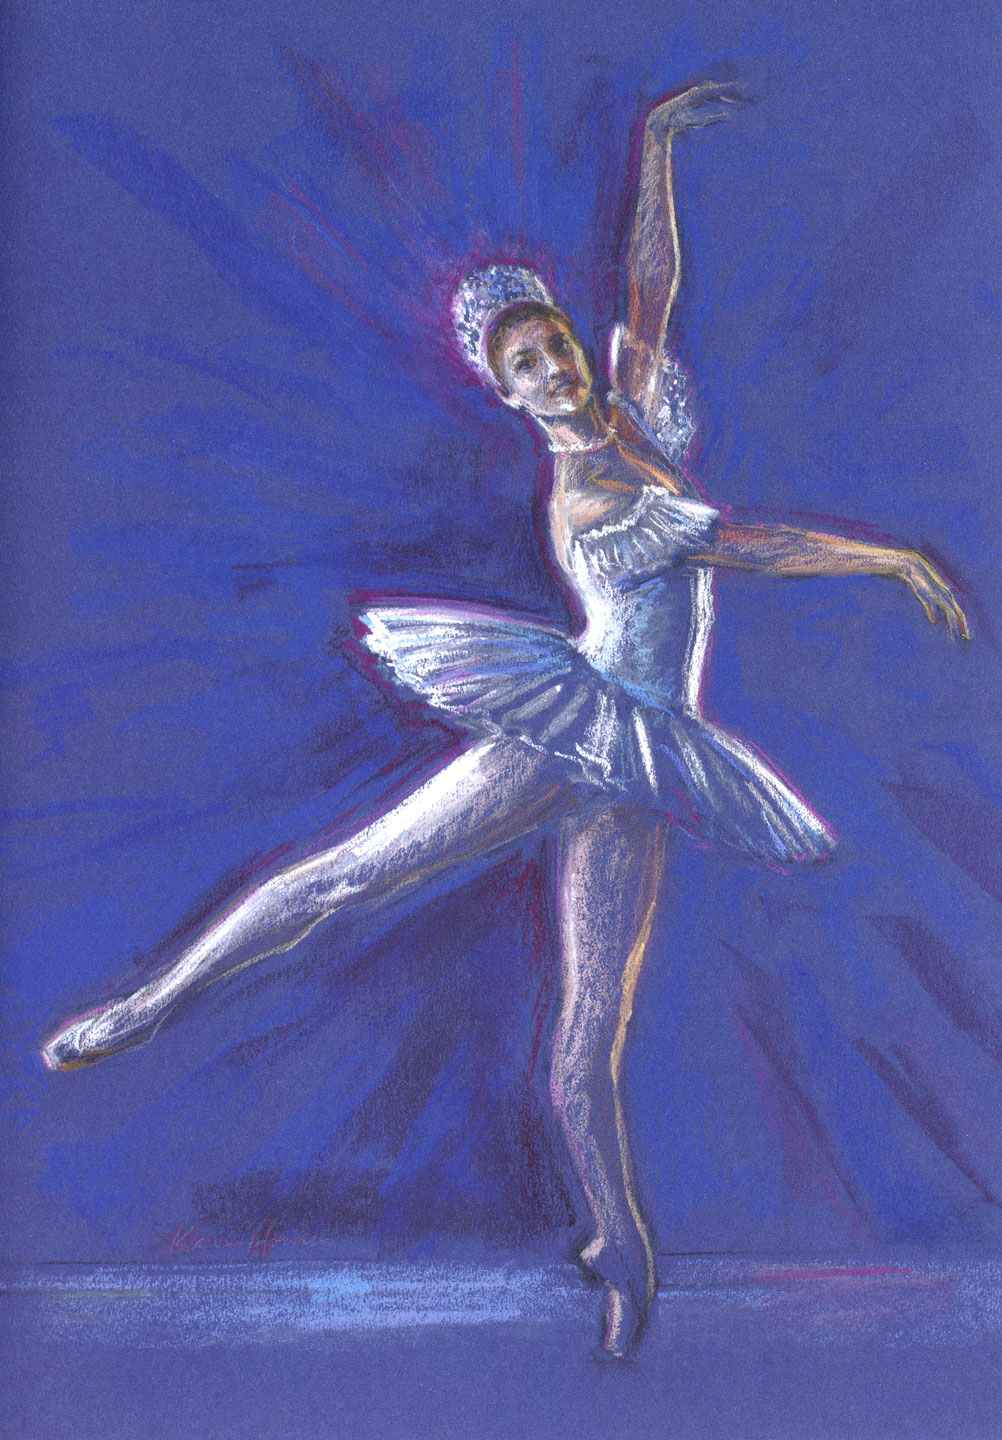 Final pastel drawing by Karen Horne for Ballet West's Nutcracker